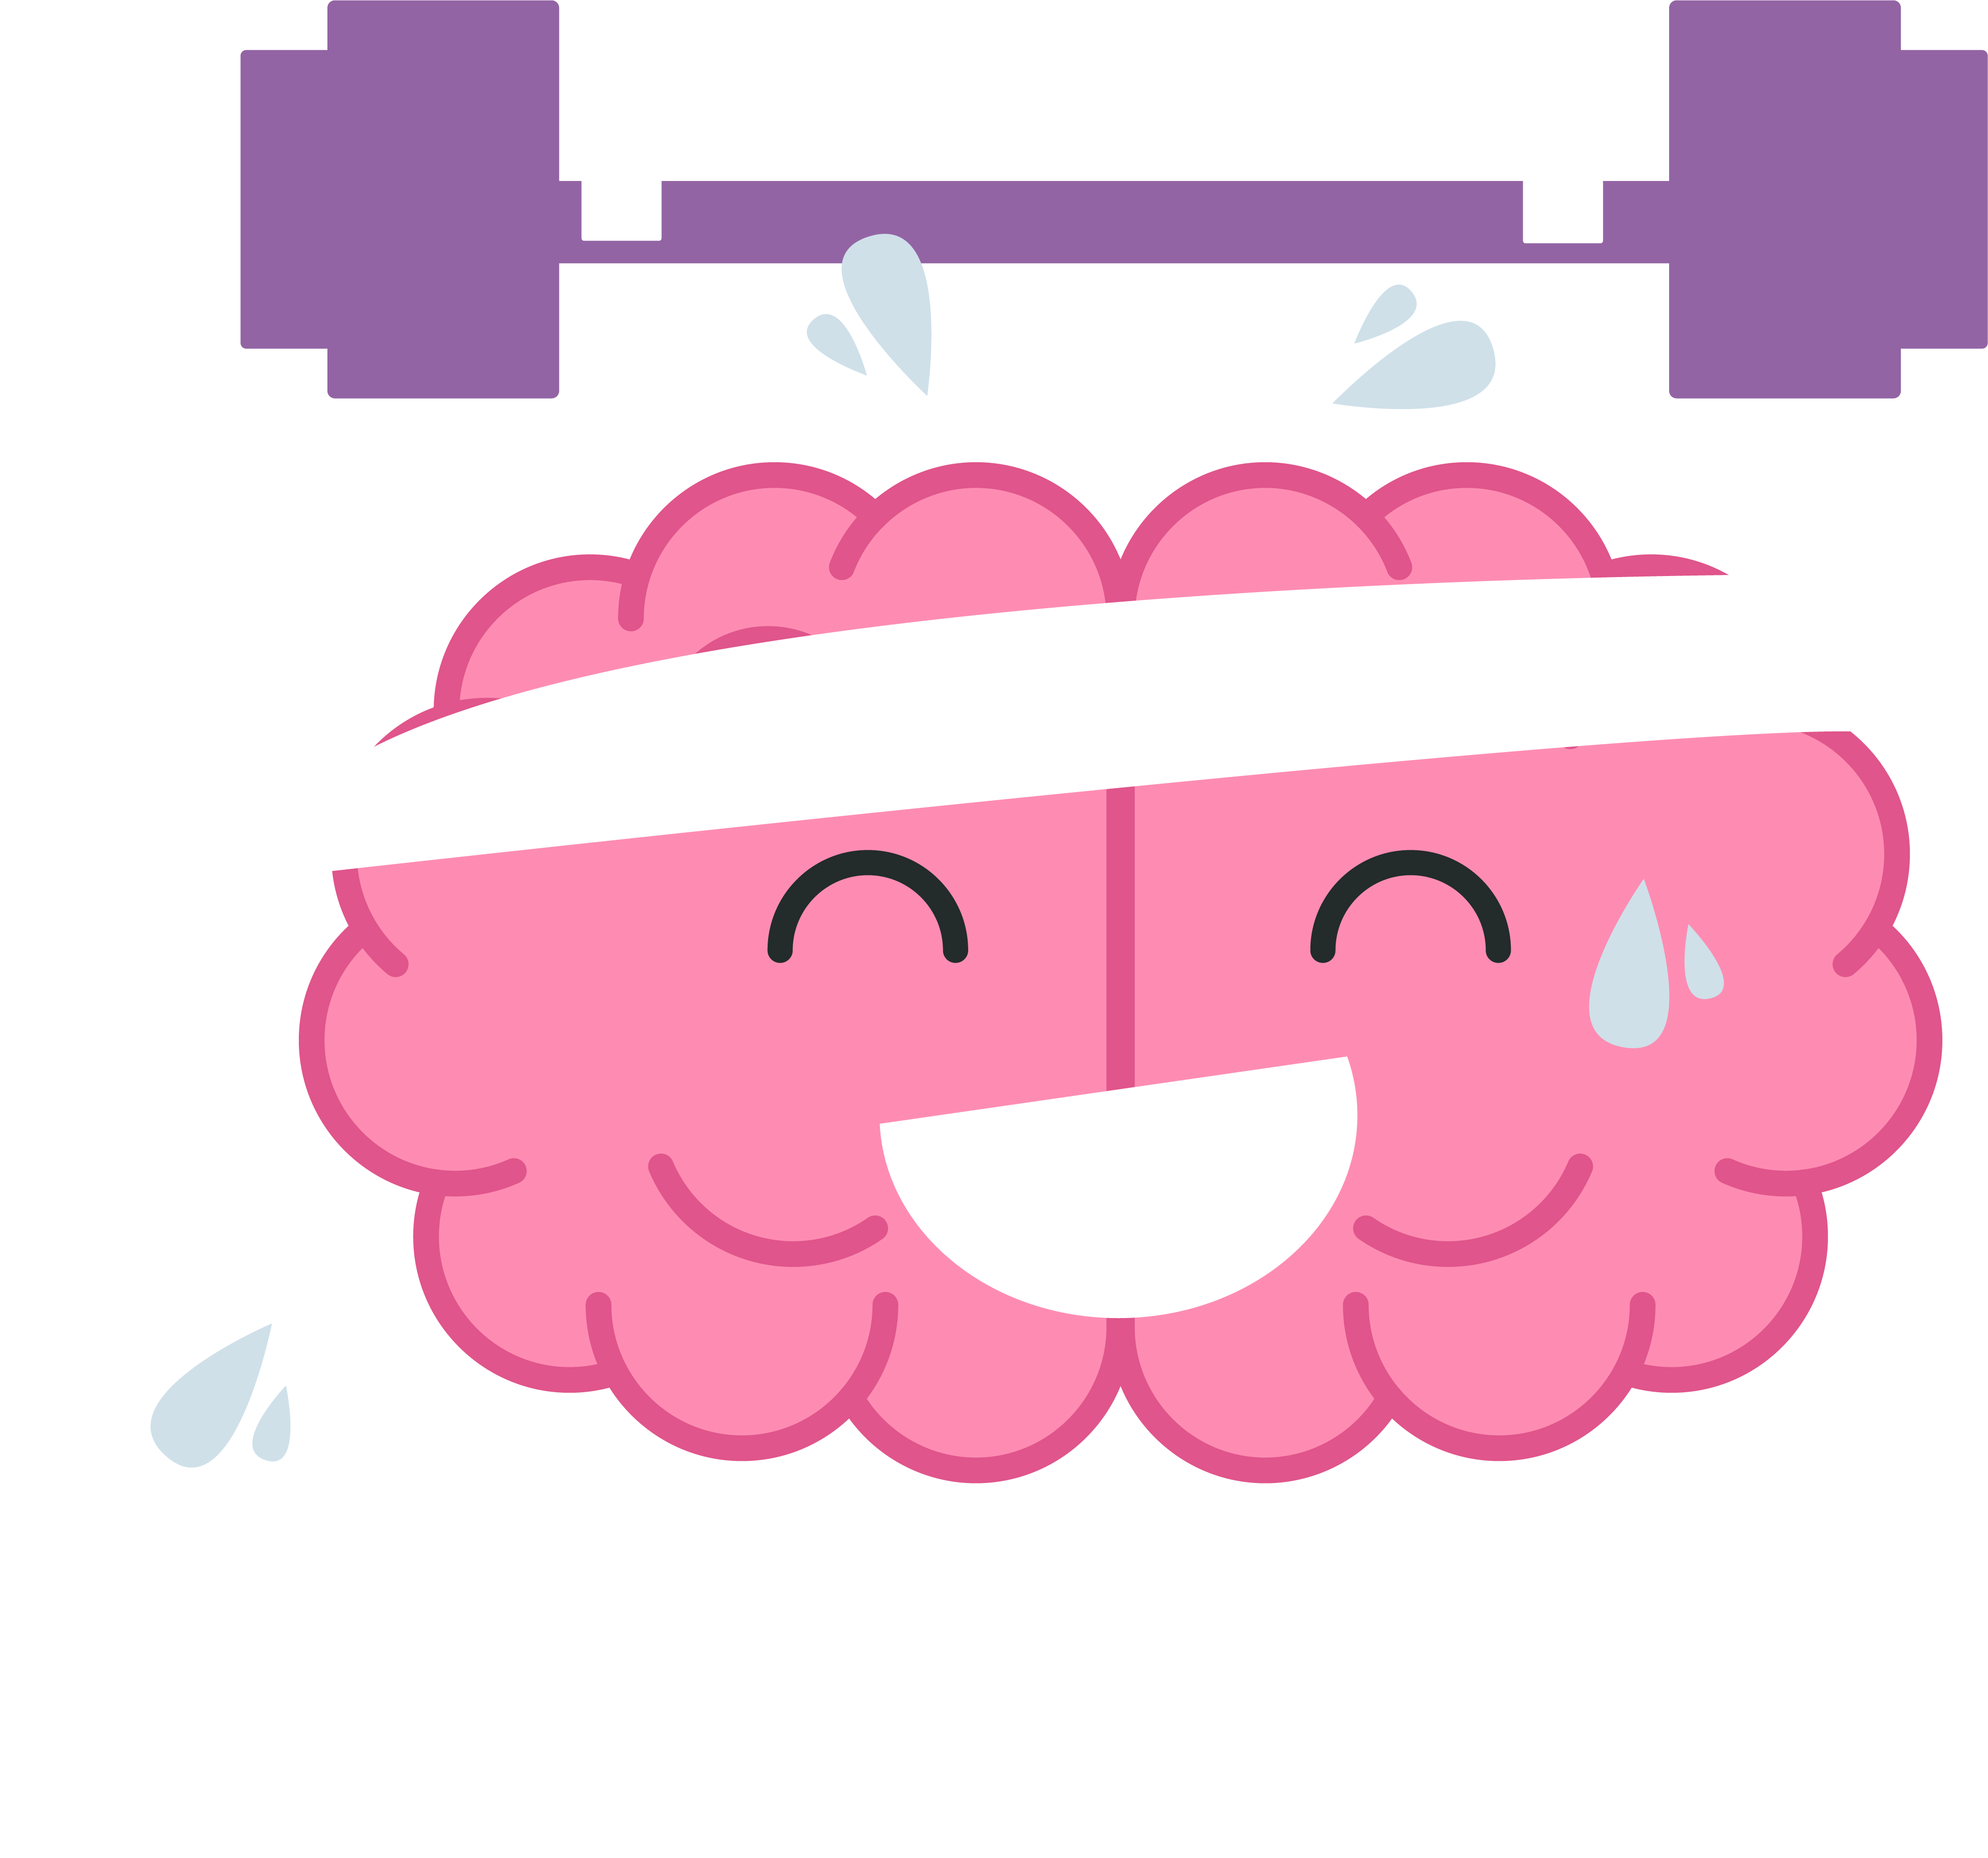 smal-brain-normal-clint-android-brain-teasers-for-adults-best-training-apps-great-memory-improvement-games-online-android-playstore-ios-mind-games-exercises